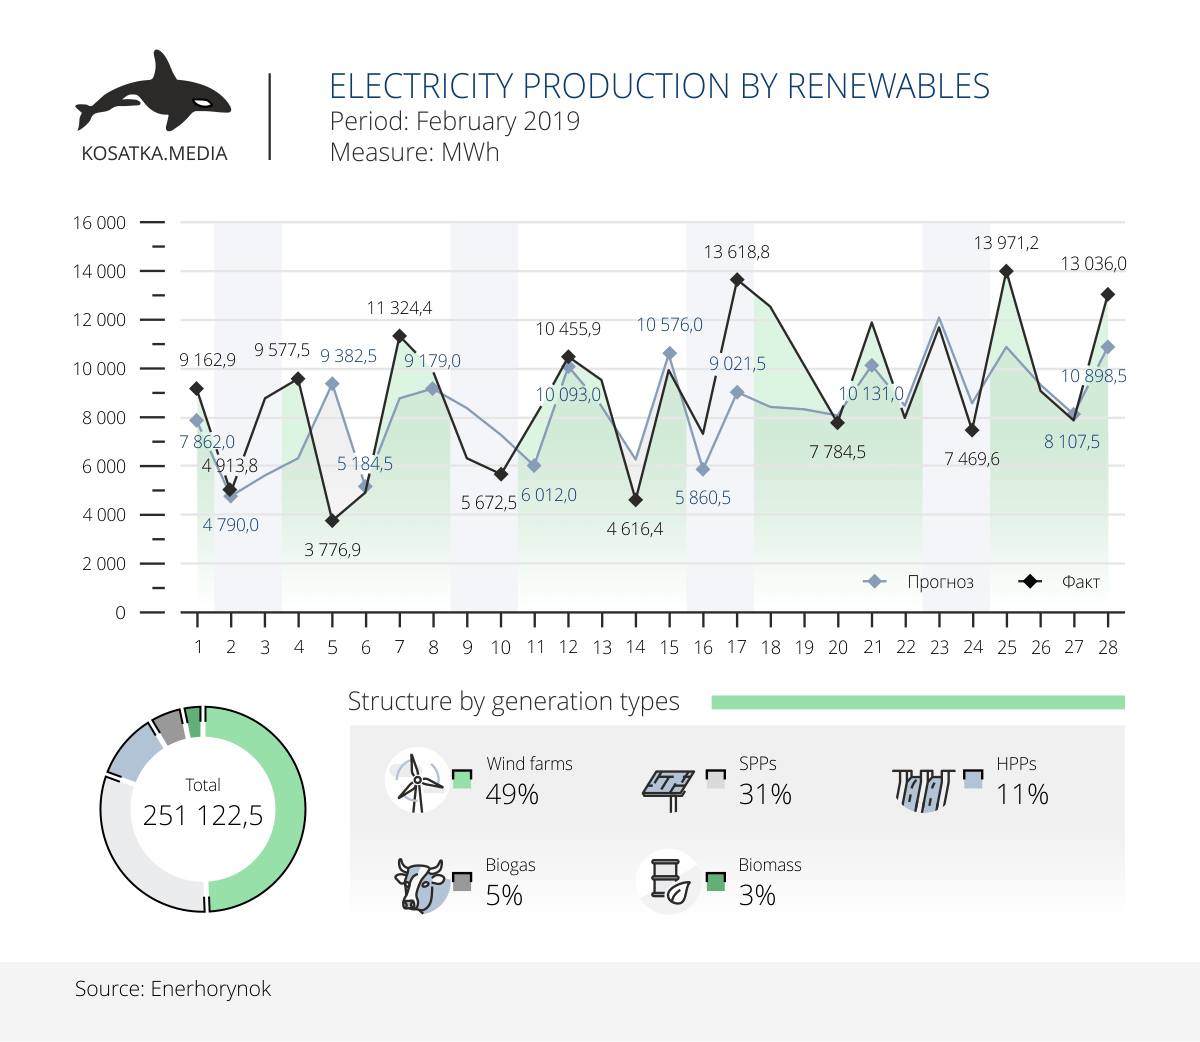 Electricity generation by renewables in February 2019